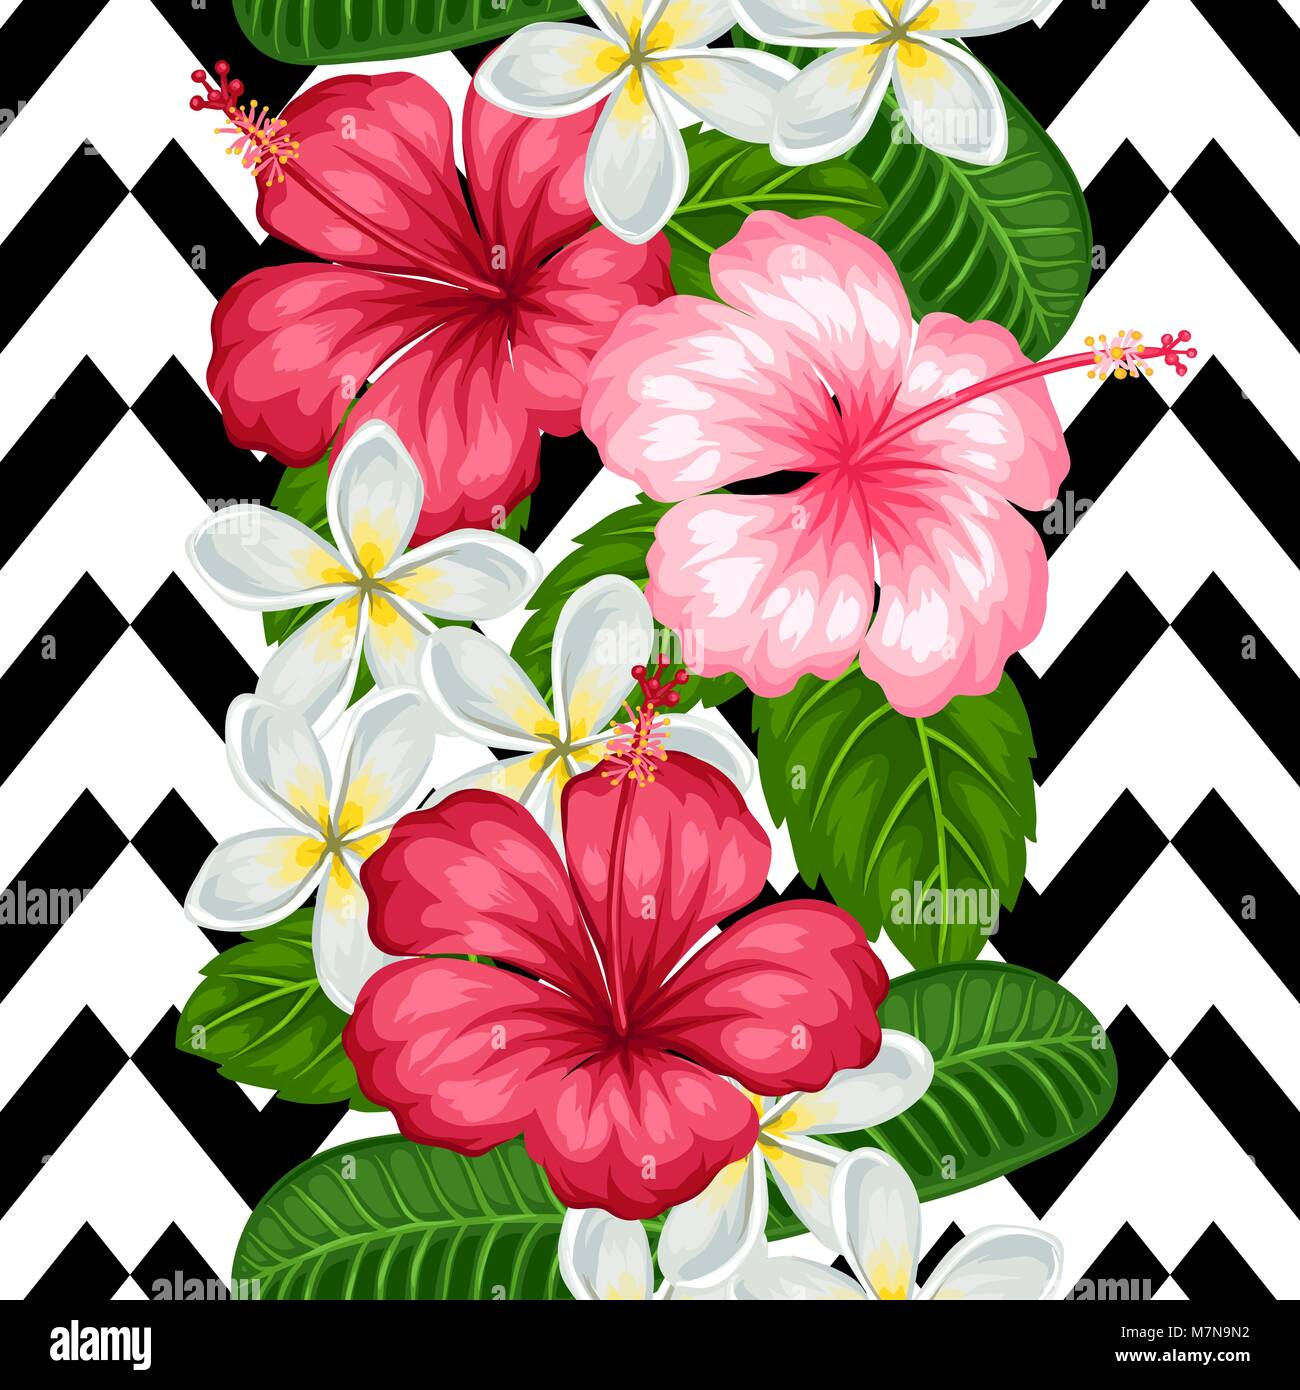 Seamless pattern with tropical flowers hibiscus and plumeria stock seamless pattern with tropical flowers hibiscus and plumeria background made without clipping mask easy to use for backdrop textile wrapping paper izmirmasajfo Choice Image